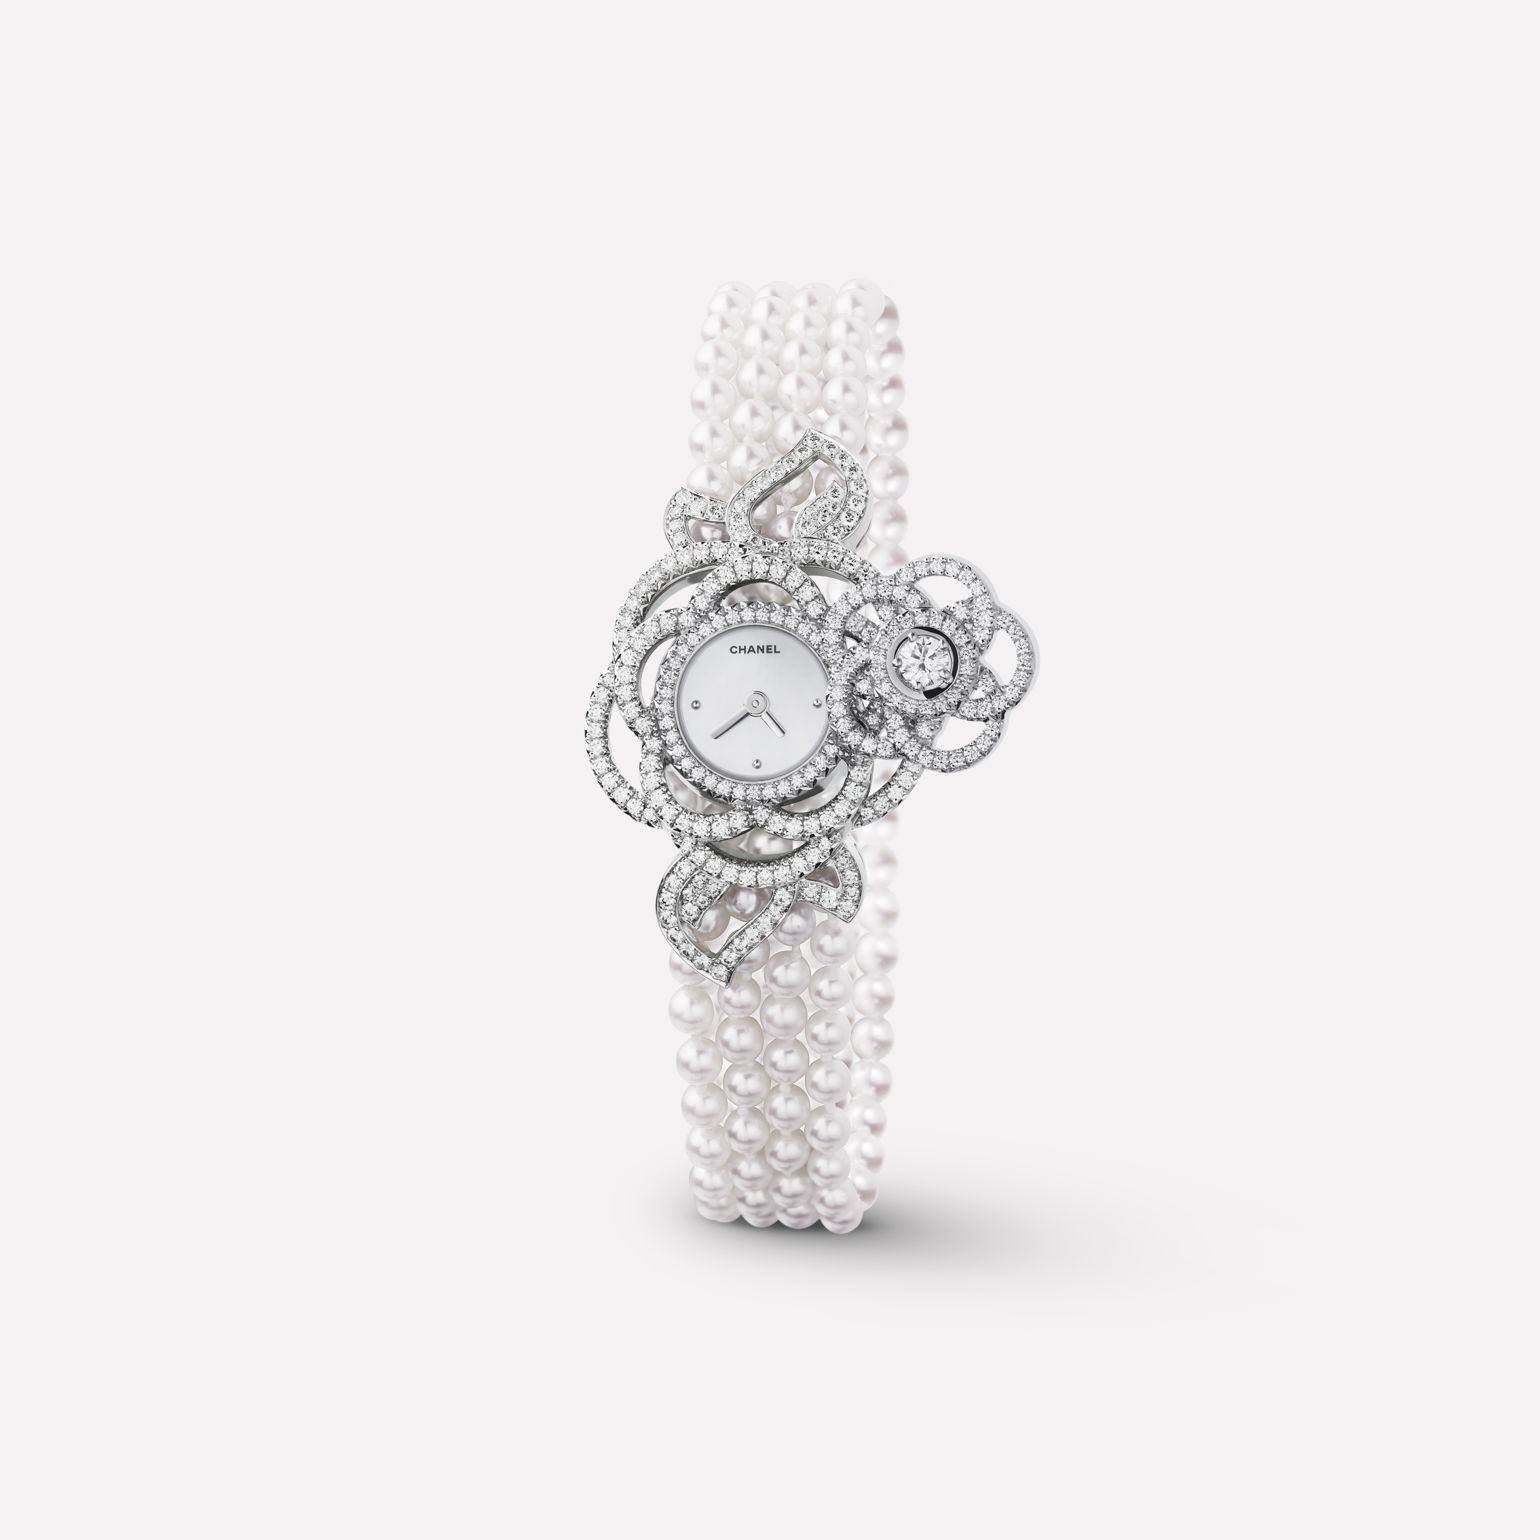 Camélia Jewelry Watch Secret watch with embroidered camellia motif in 18K white gold, diamonds, and cultured pearls - Medium version